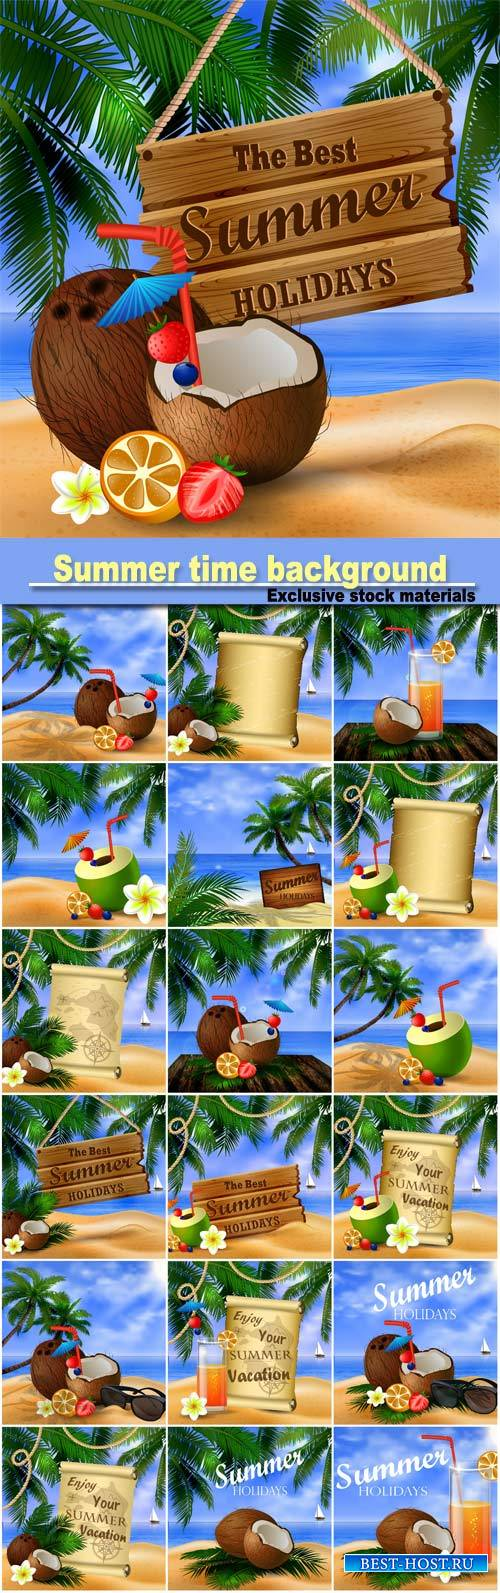 Summer time background with sea views, cocktails